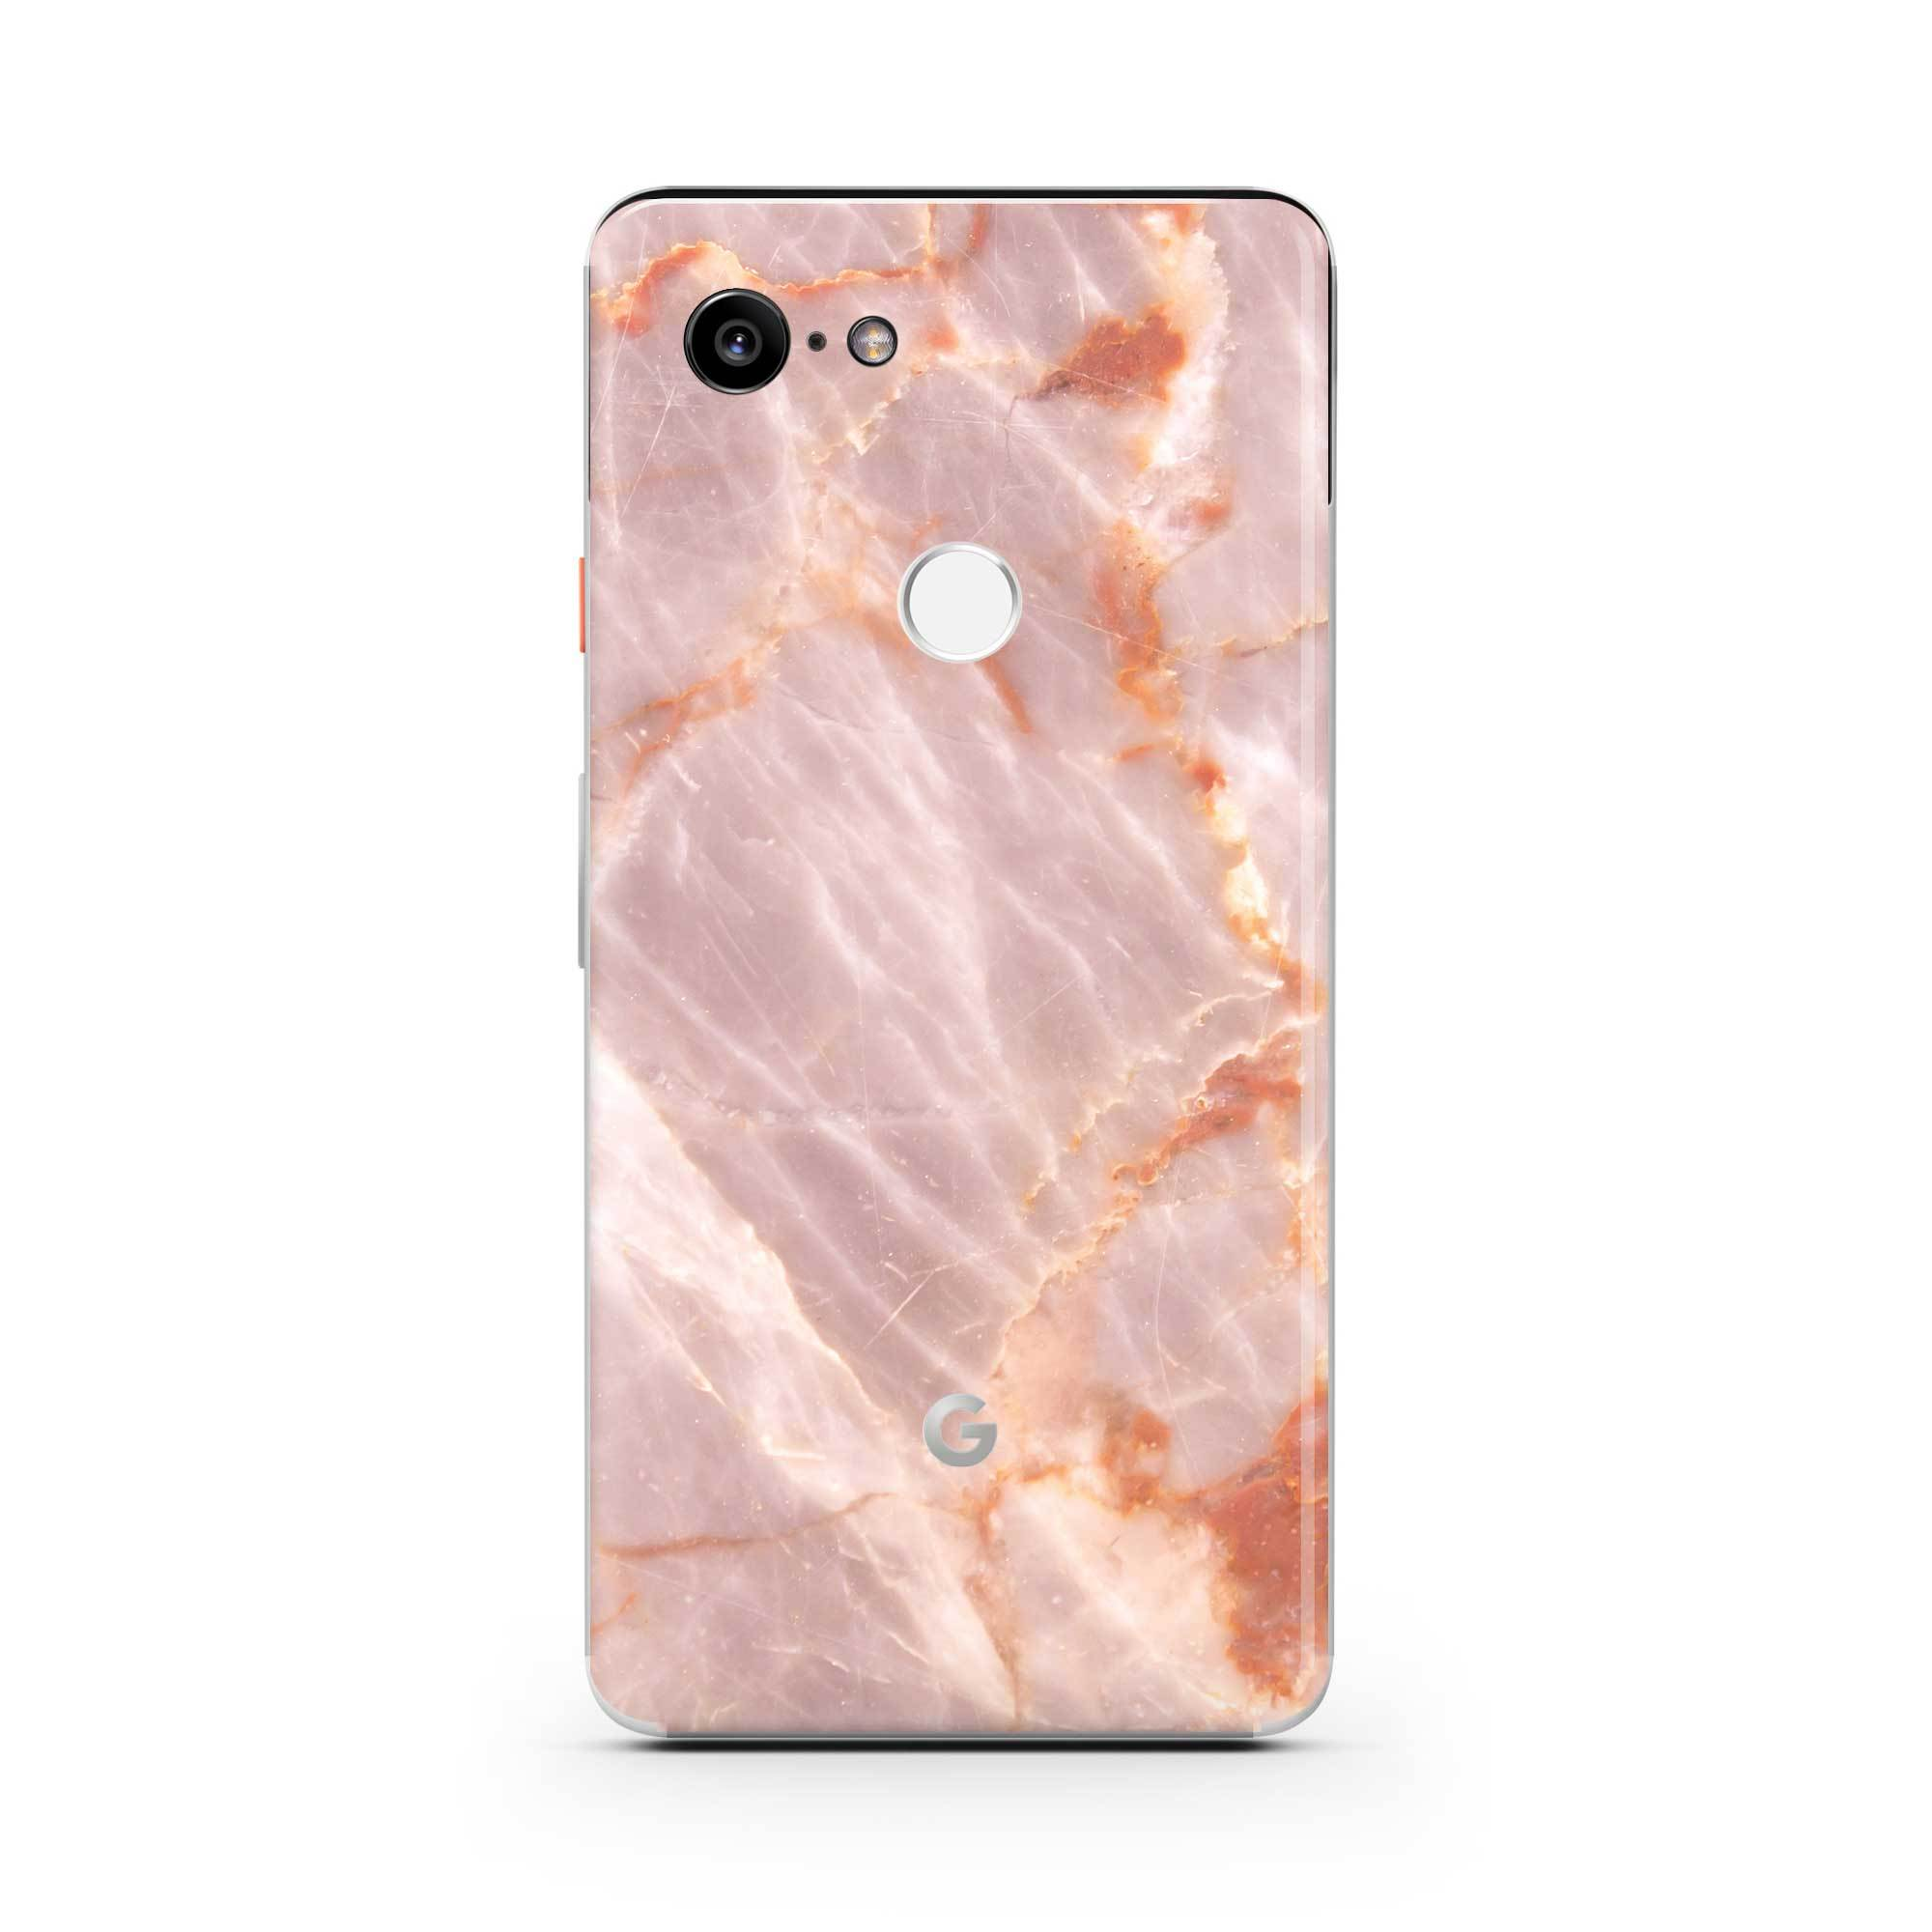 Blush Marble Pixel 3 XL Skin + Case